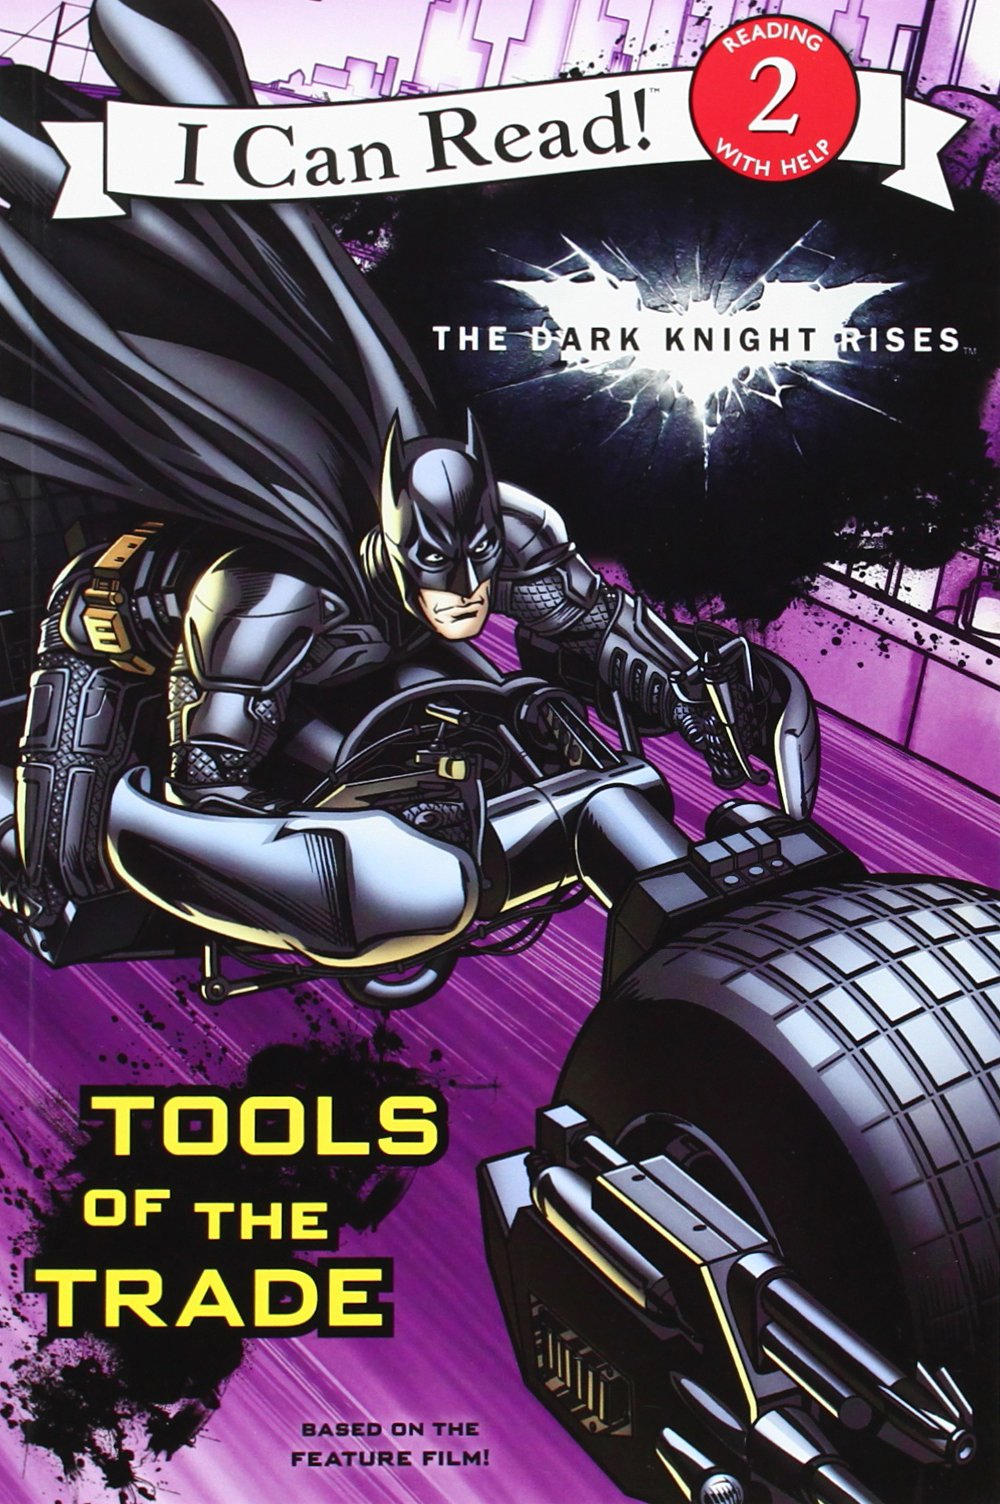 The Dark Knight Rises: Tools of the Trade (I Can Read Book 2)